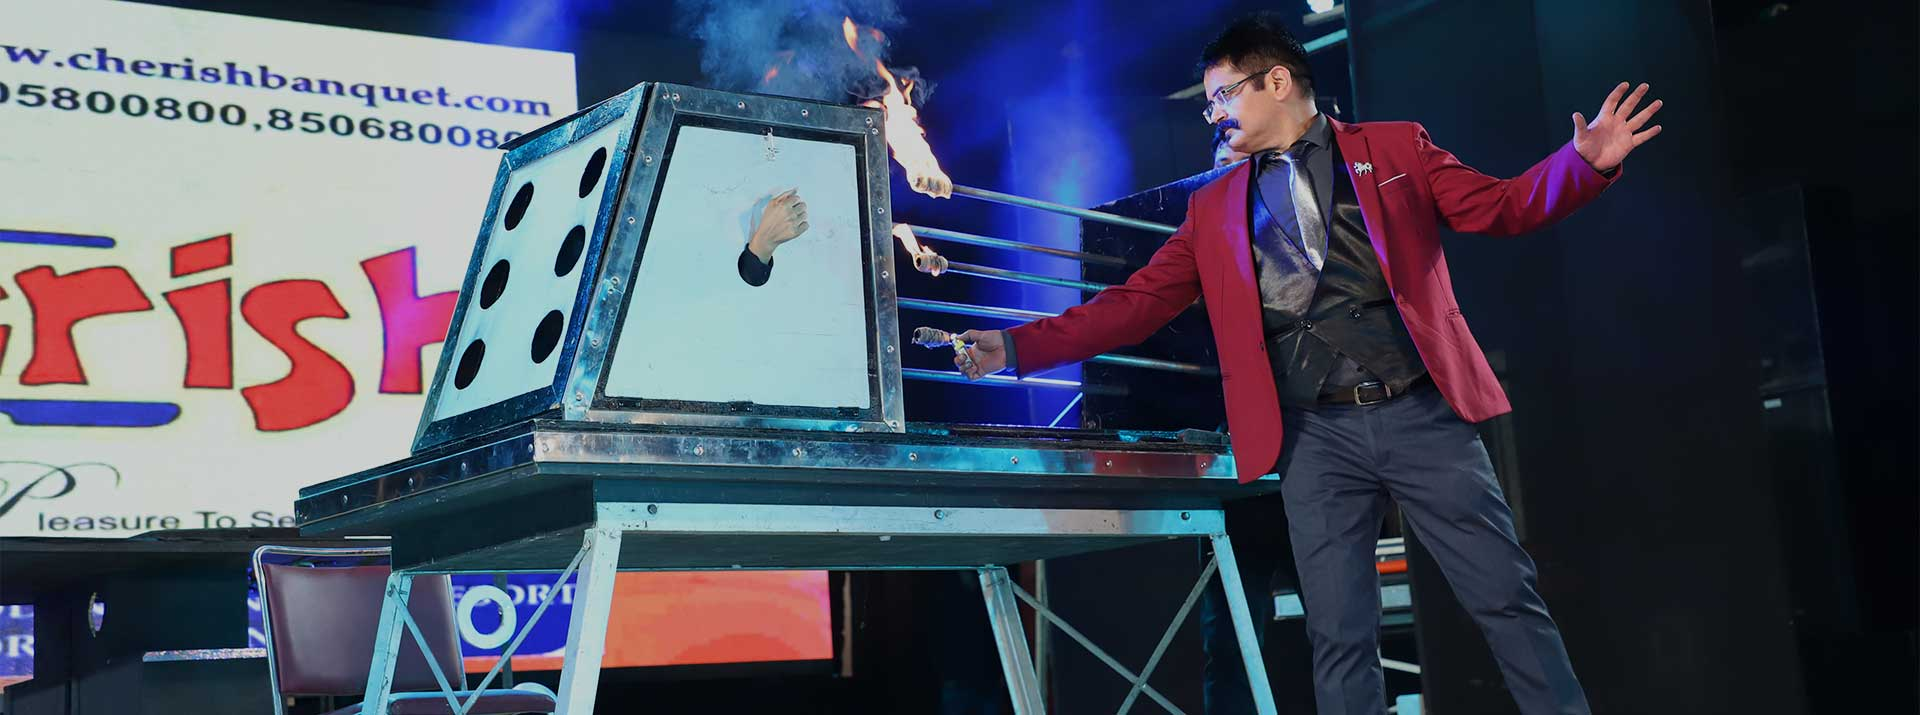 What Makes a Good Illusionist?